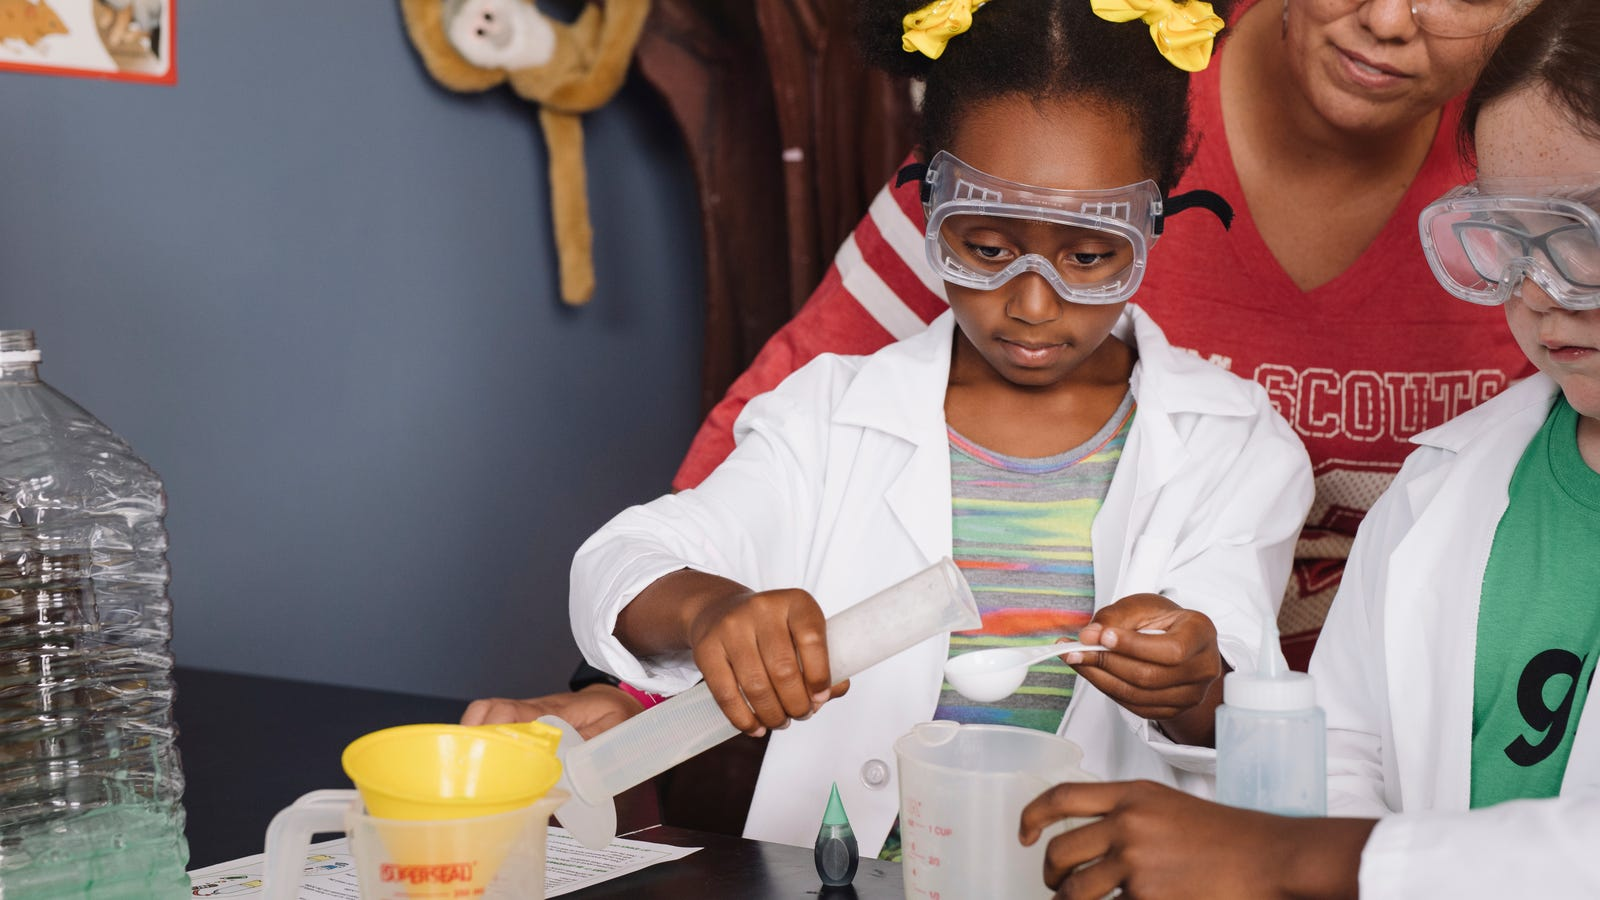 The Girl Scouts Looks Toward the Future With 30 New Science, Tech, and Environment Badges